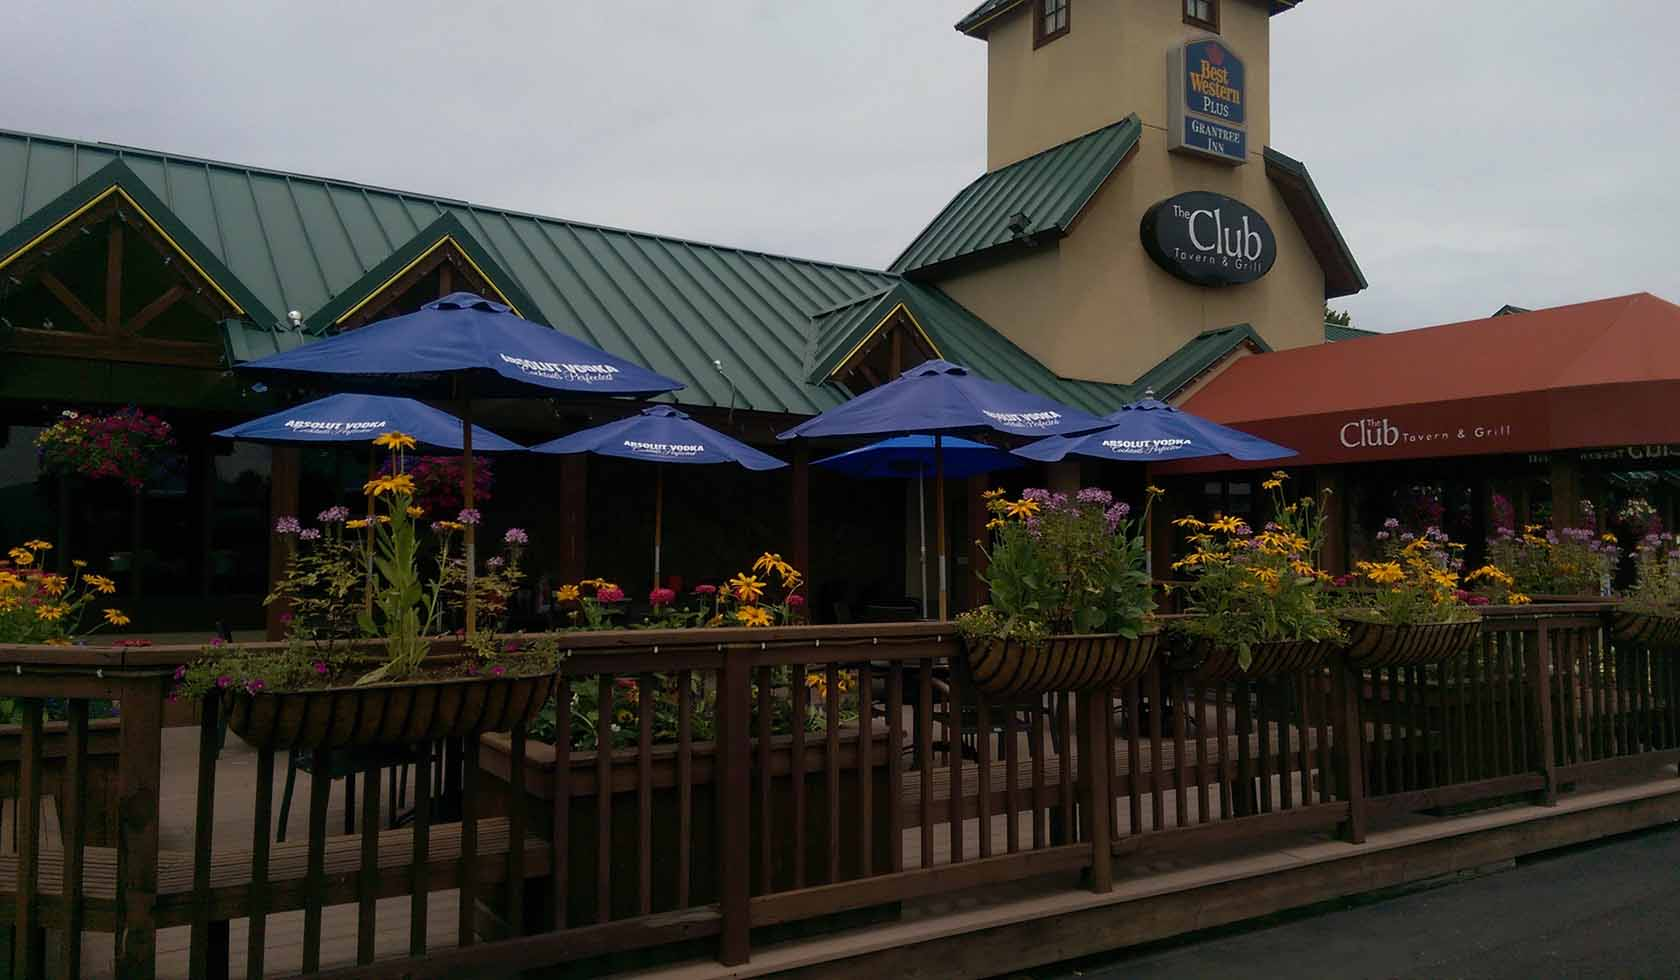 The Club Tavern and Grill profile image